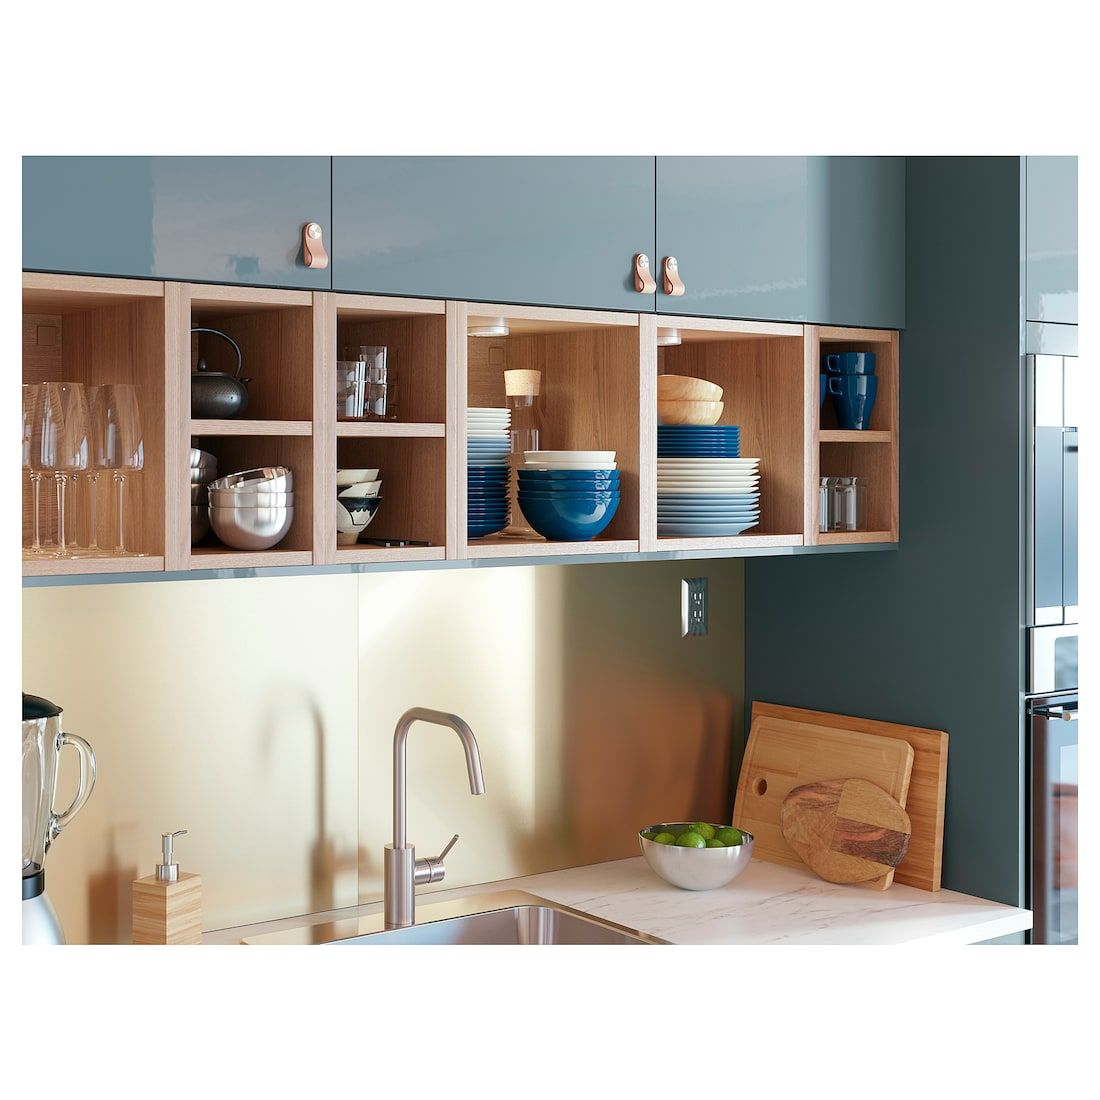 LYSEKIL Wall panel double sided brass color, stainless